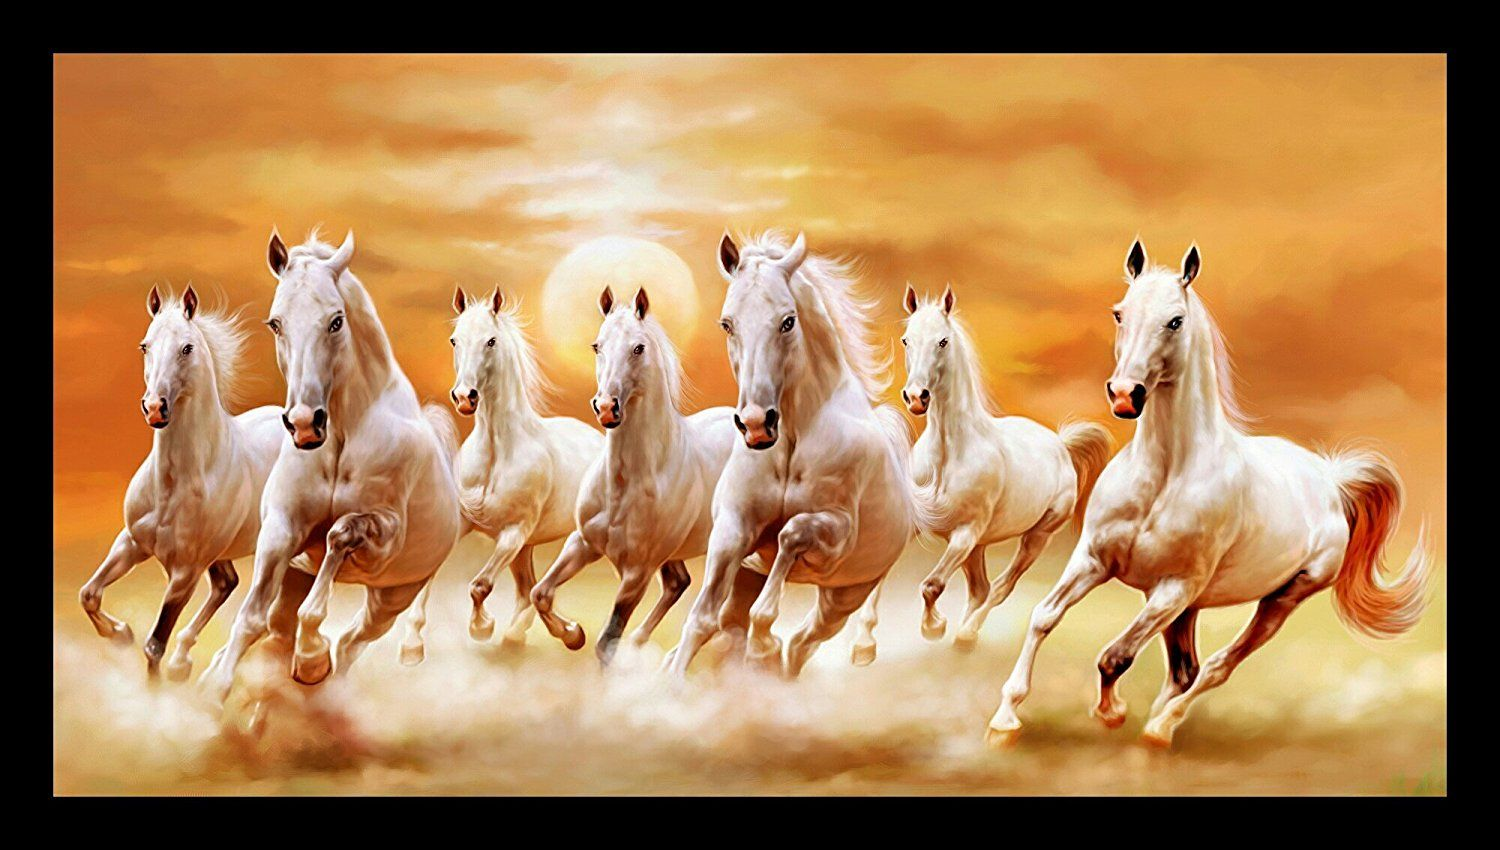 Download Seven Horses Hd Wallpaper White Seven Horses Painting And Search More Hd Desktop And Mobi Horse Wallpaper White Horse Painting Seven Horses Painting